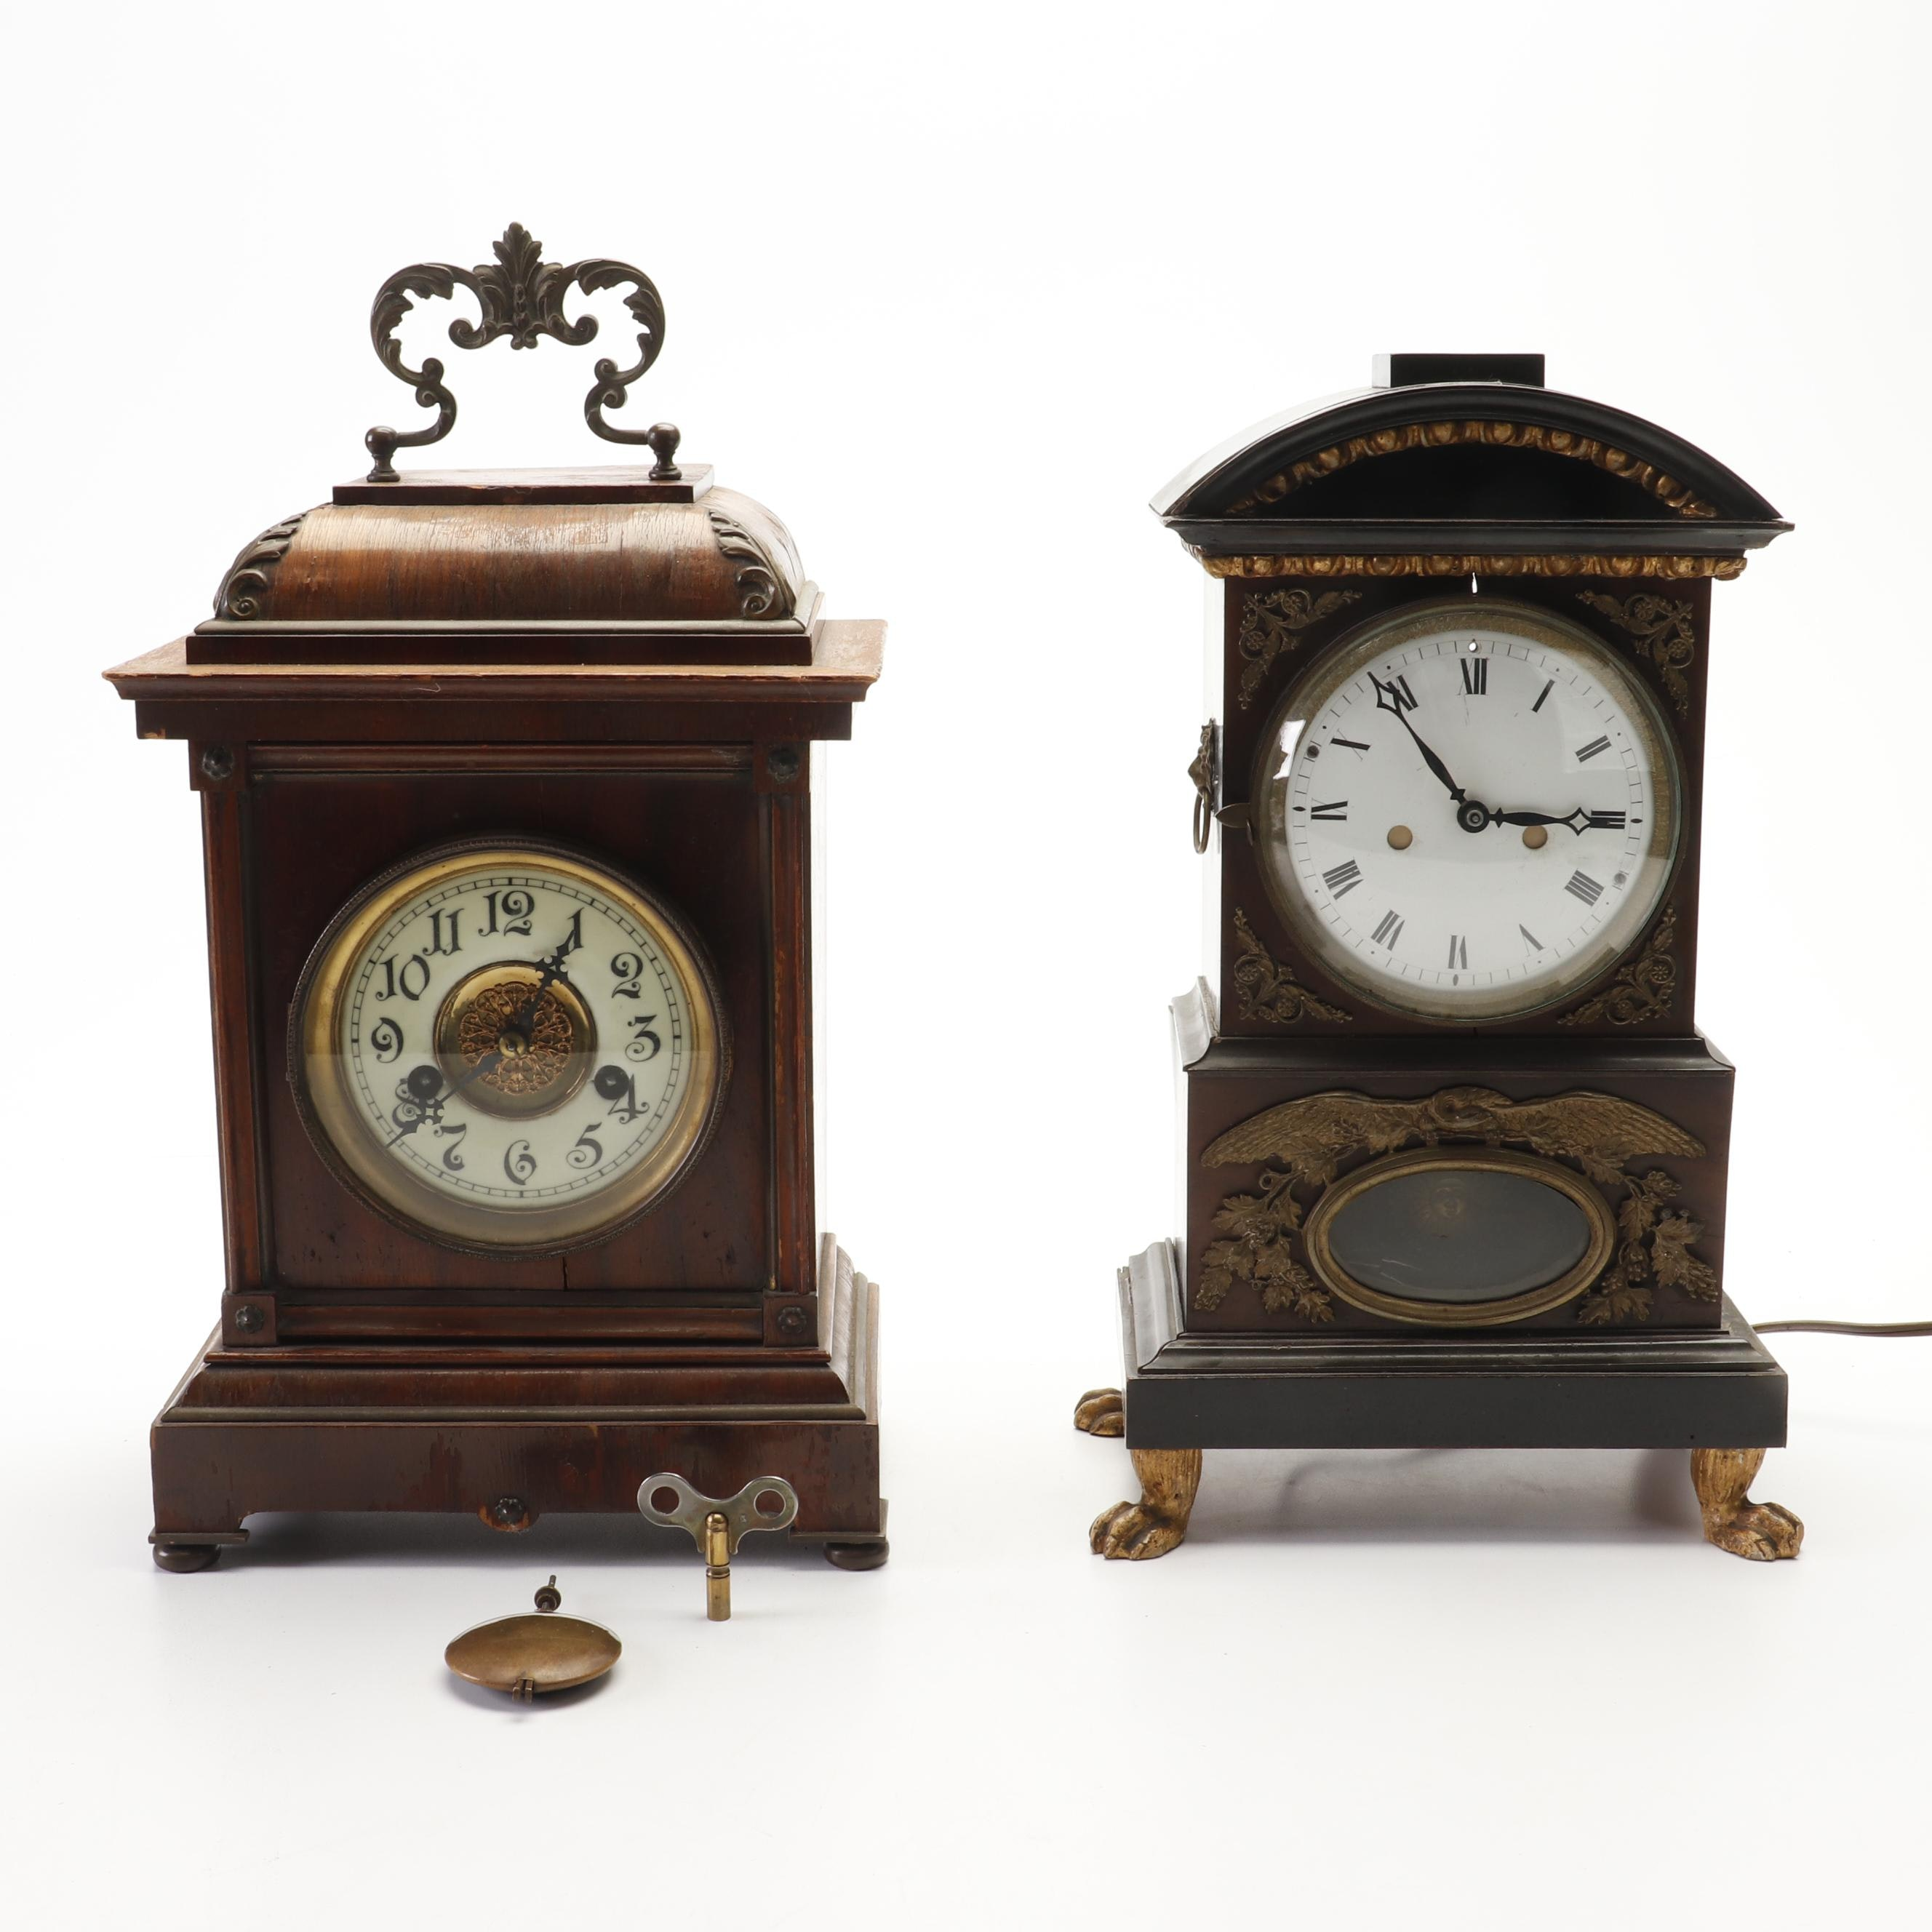 Walnut Veneered Early 20th Century Carriage Clock and Converted Mantel Clock